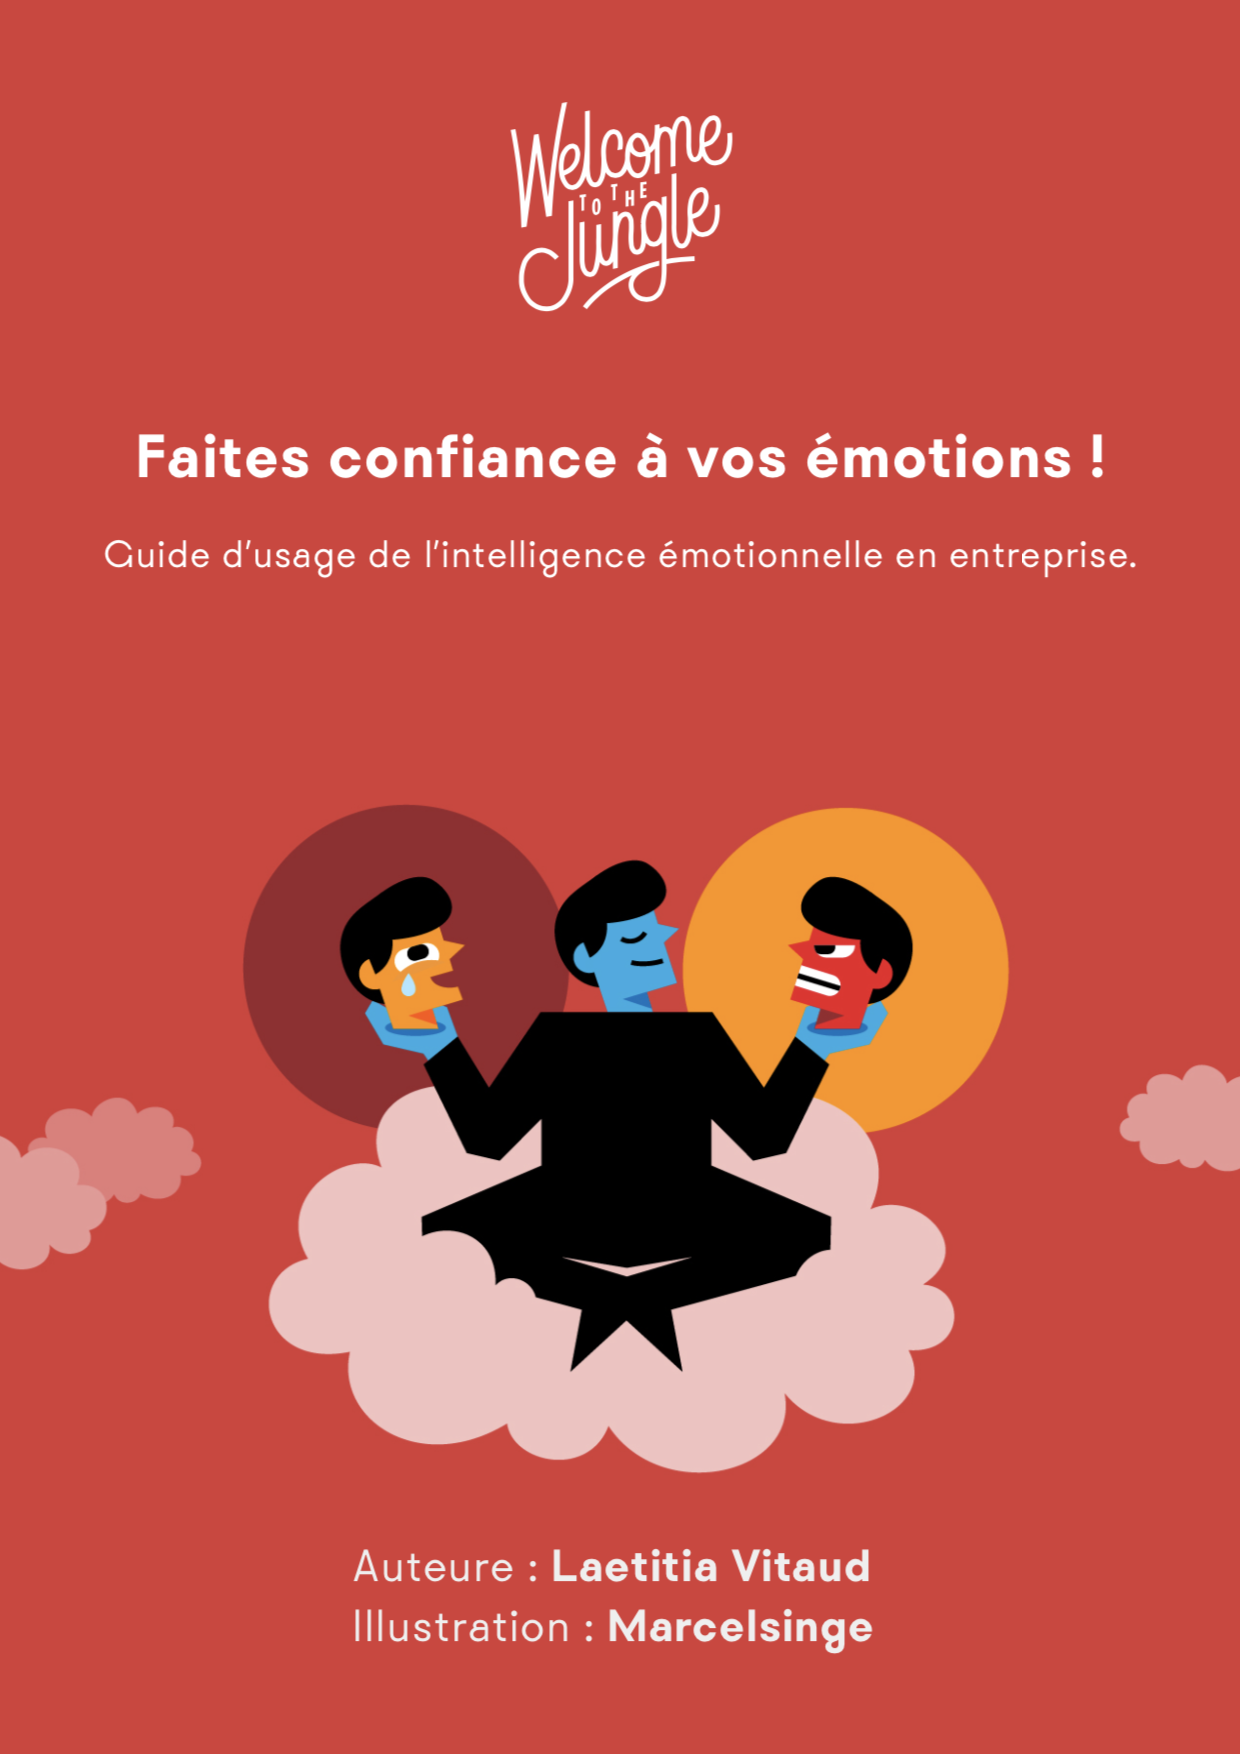 Guide d'usage de l'intelligence émotionnelle en entreprise